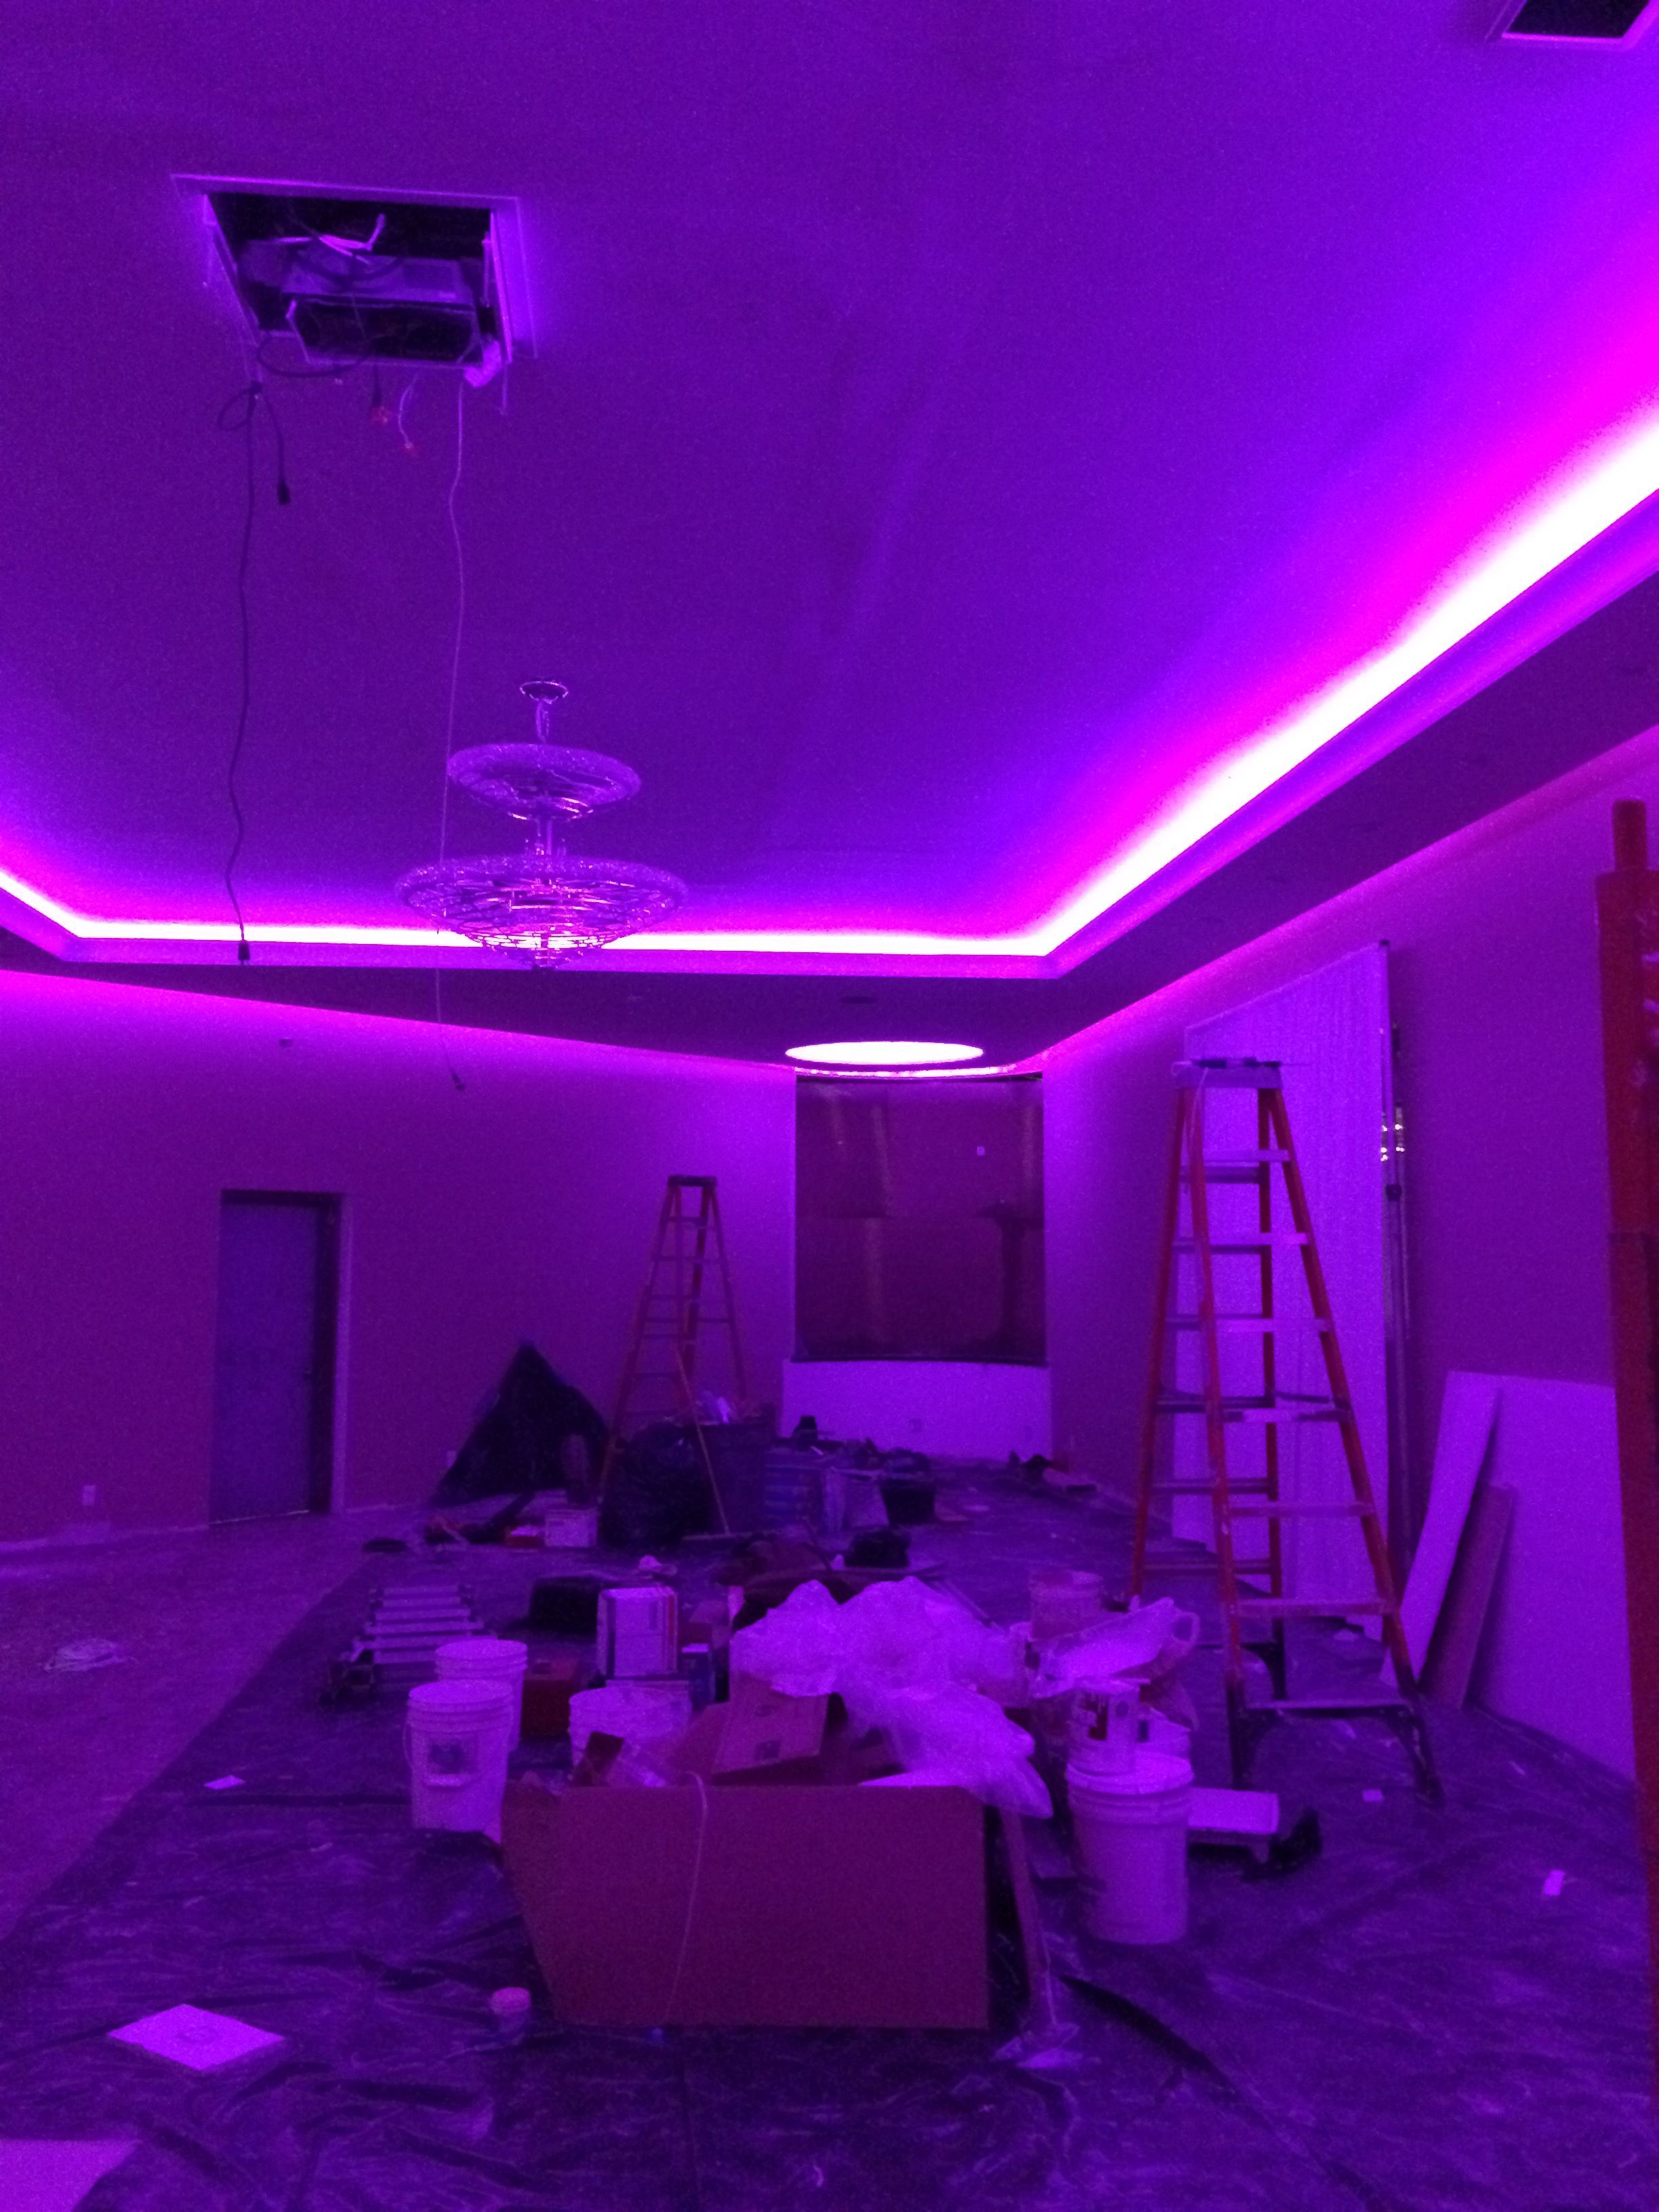 LED tape in soffet millions and millions of colors #LED